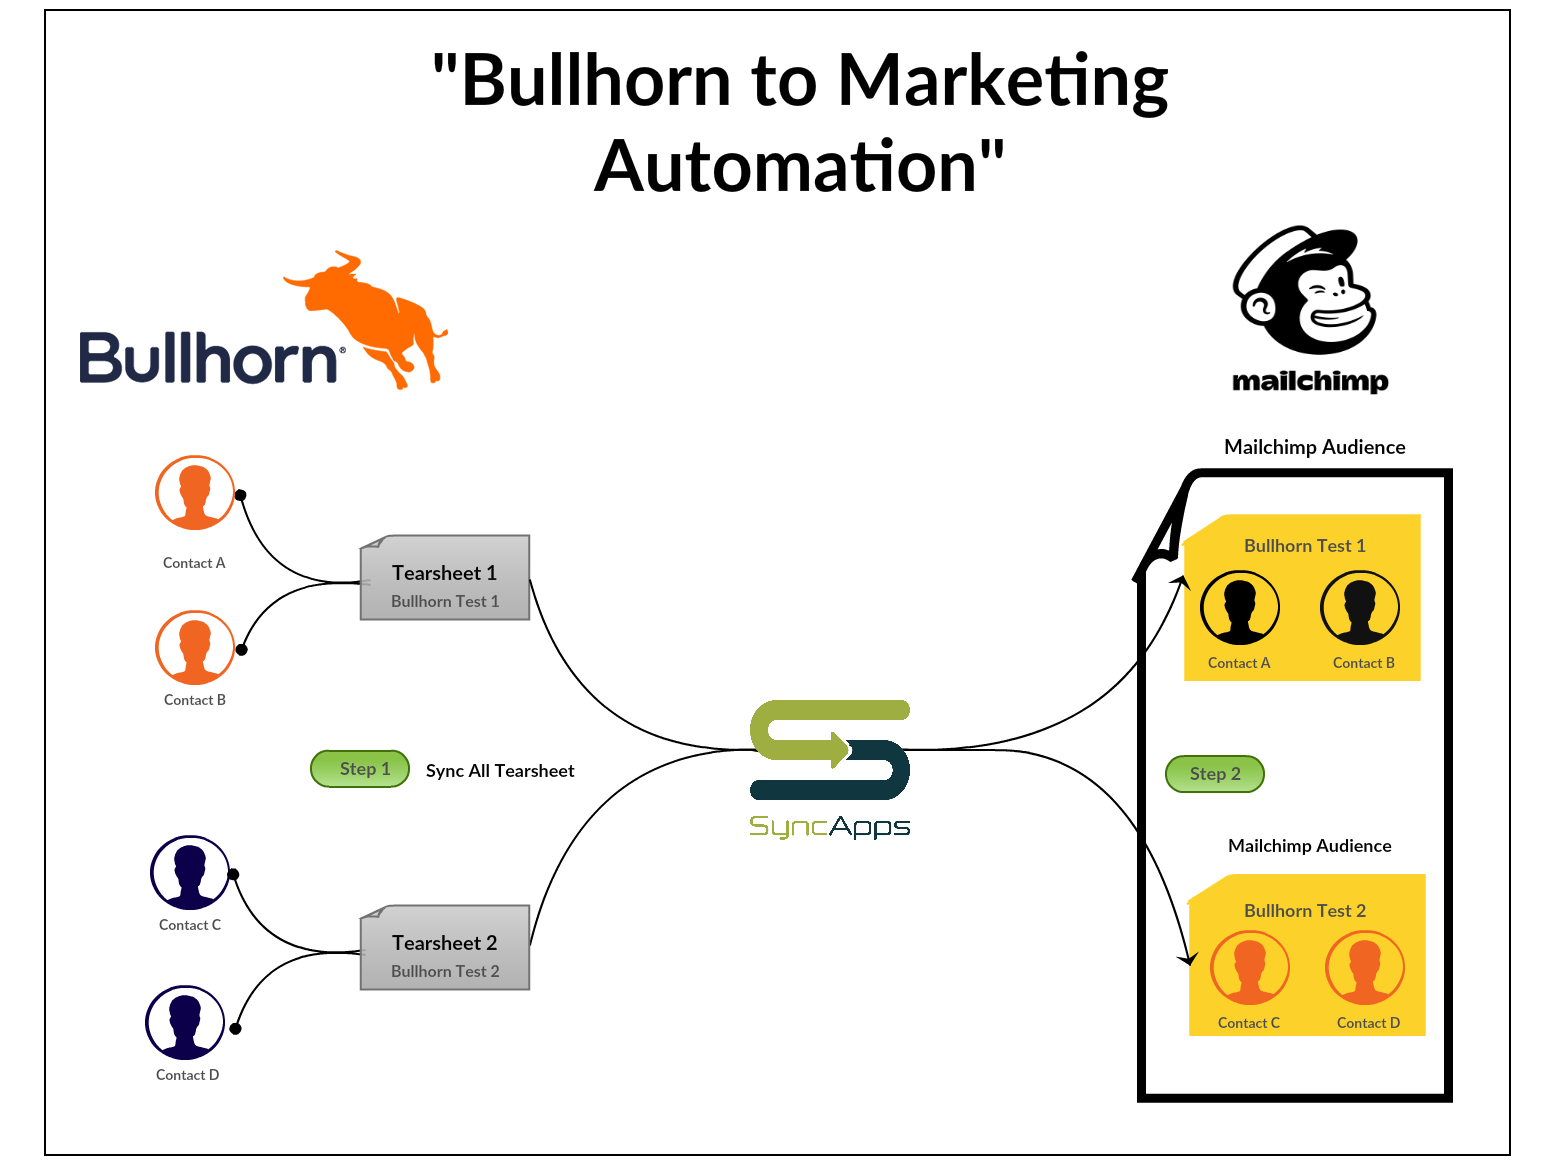 Bullhorn_to_Marketing_Automation_.png